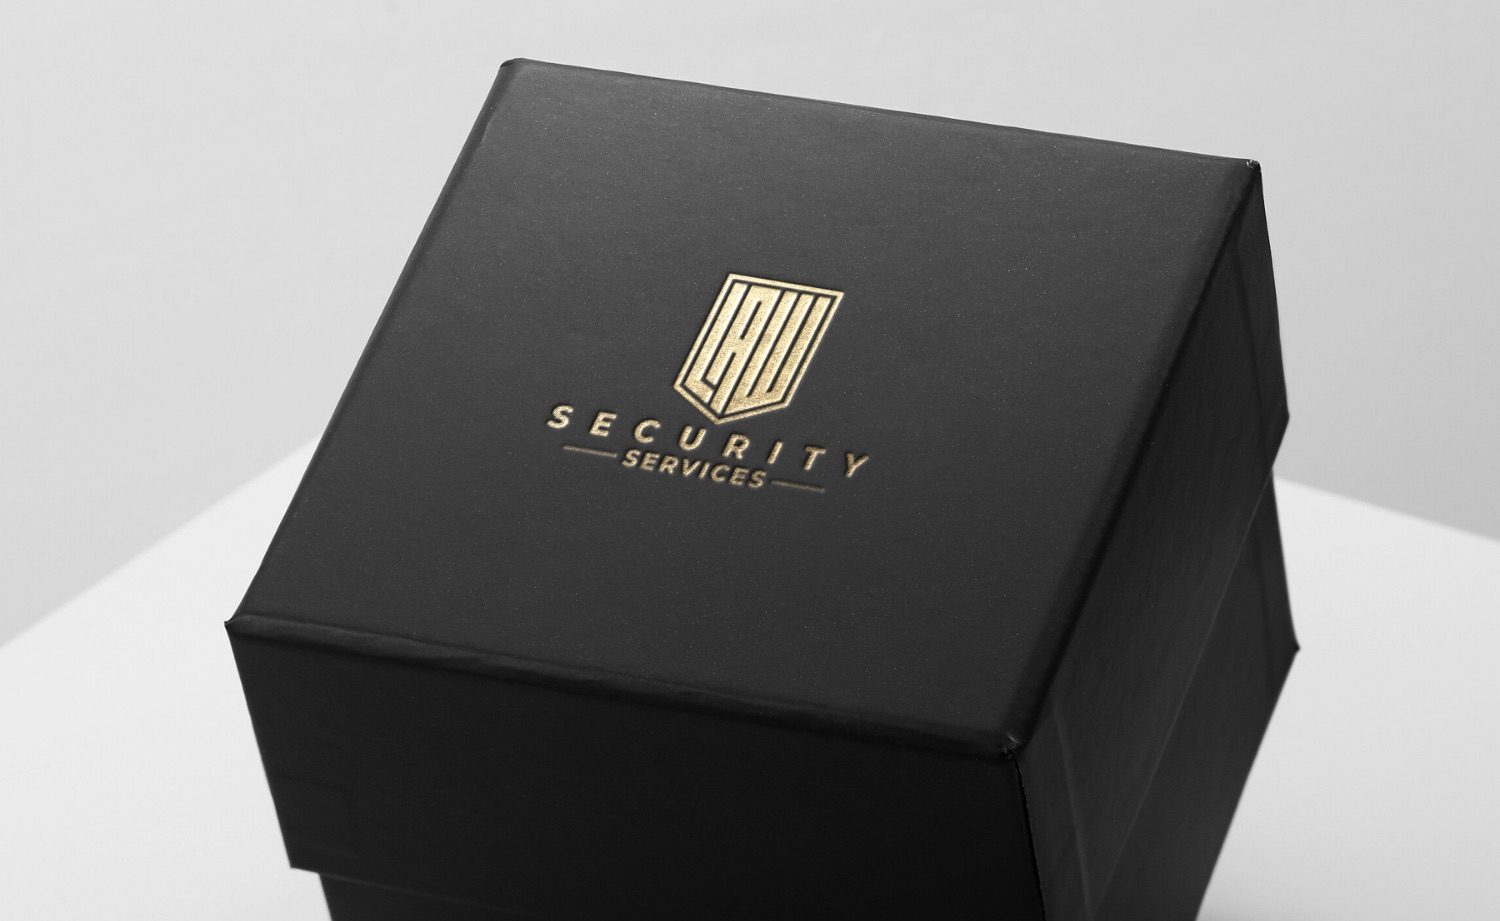 Huey-Hutch-LAW-Security-Services-Box